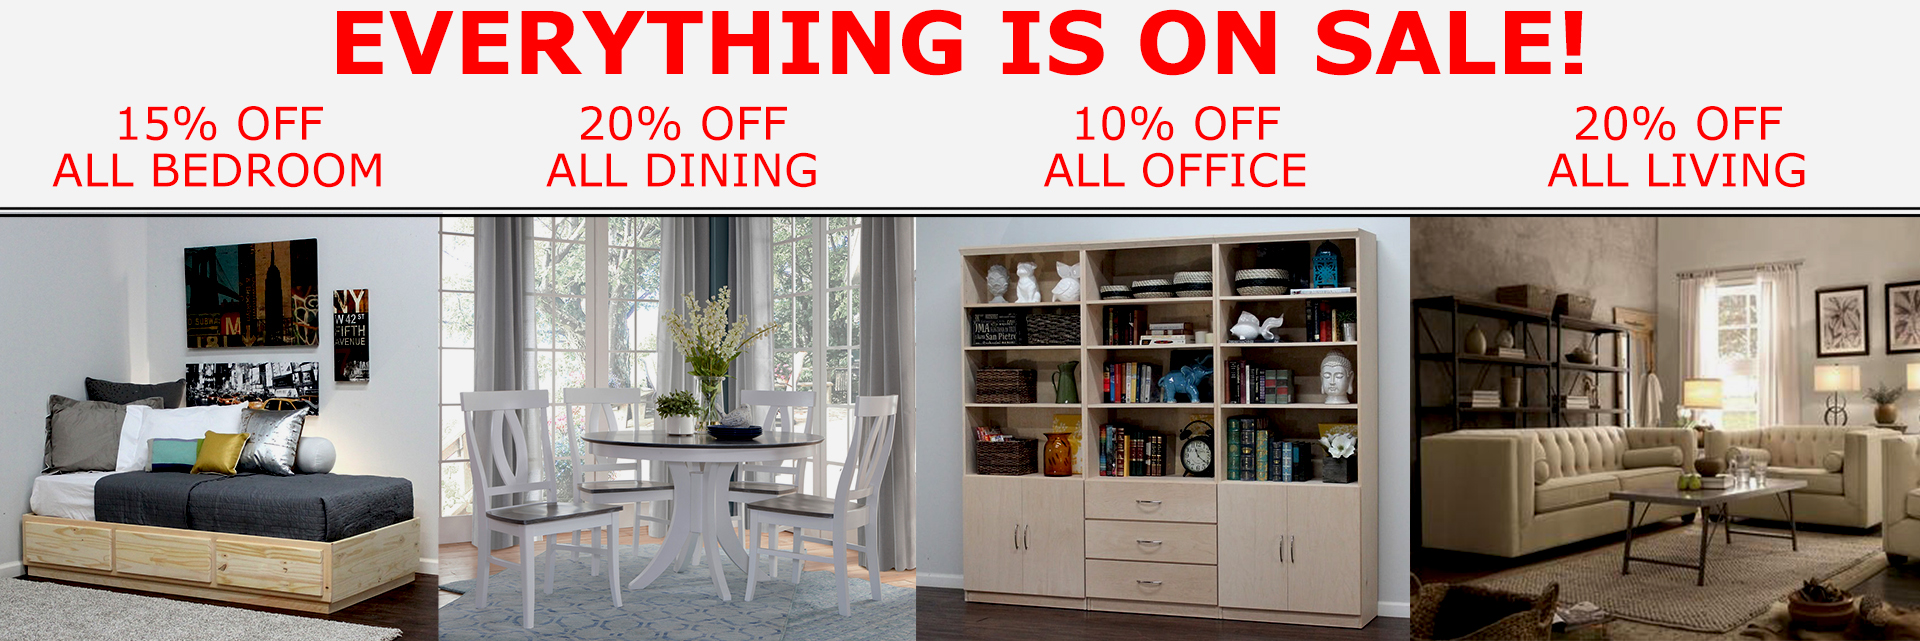 Receive 10 - 20% Off